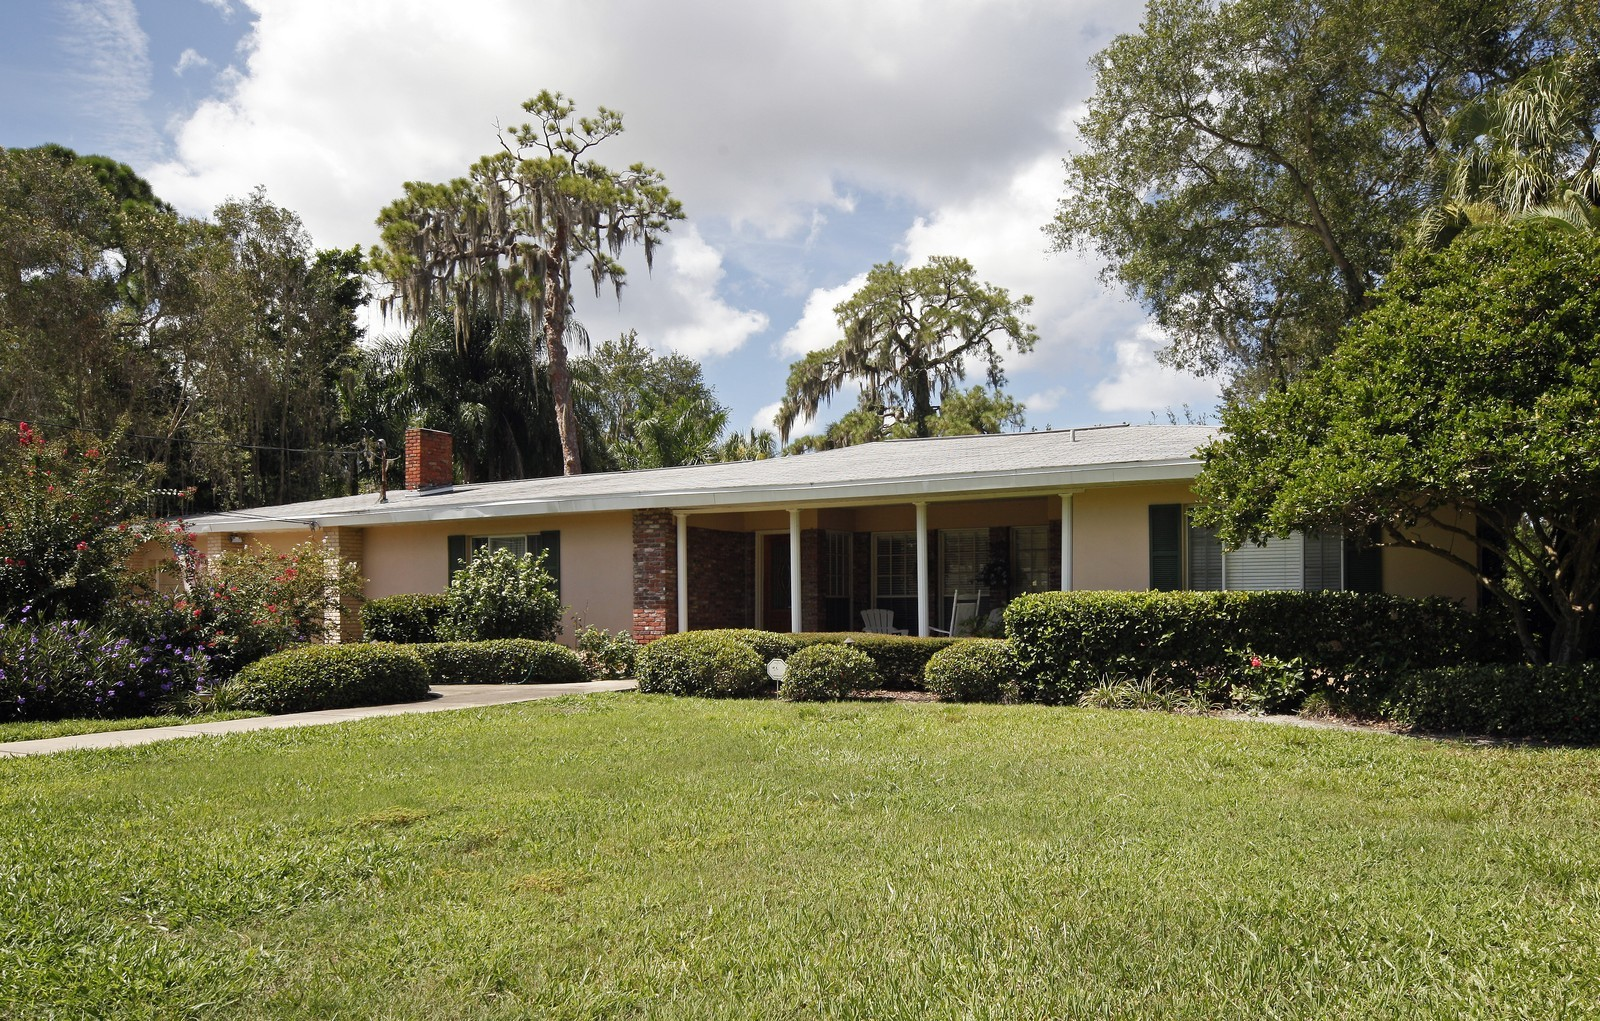 Real Estate Photography - 2621 N Dundee St, Tampa, FL, 33629 - Front View